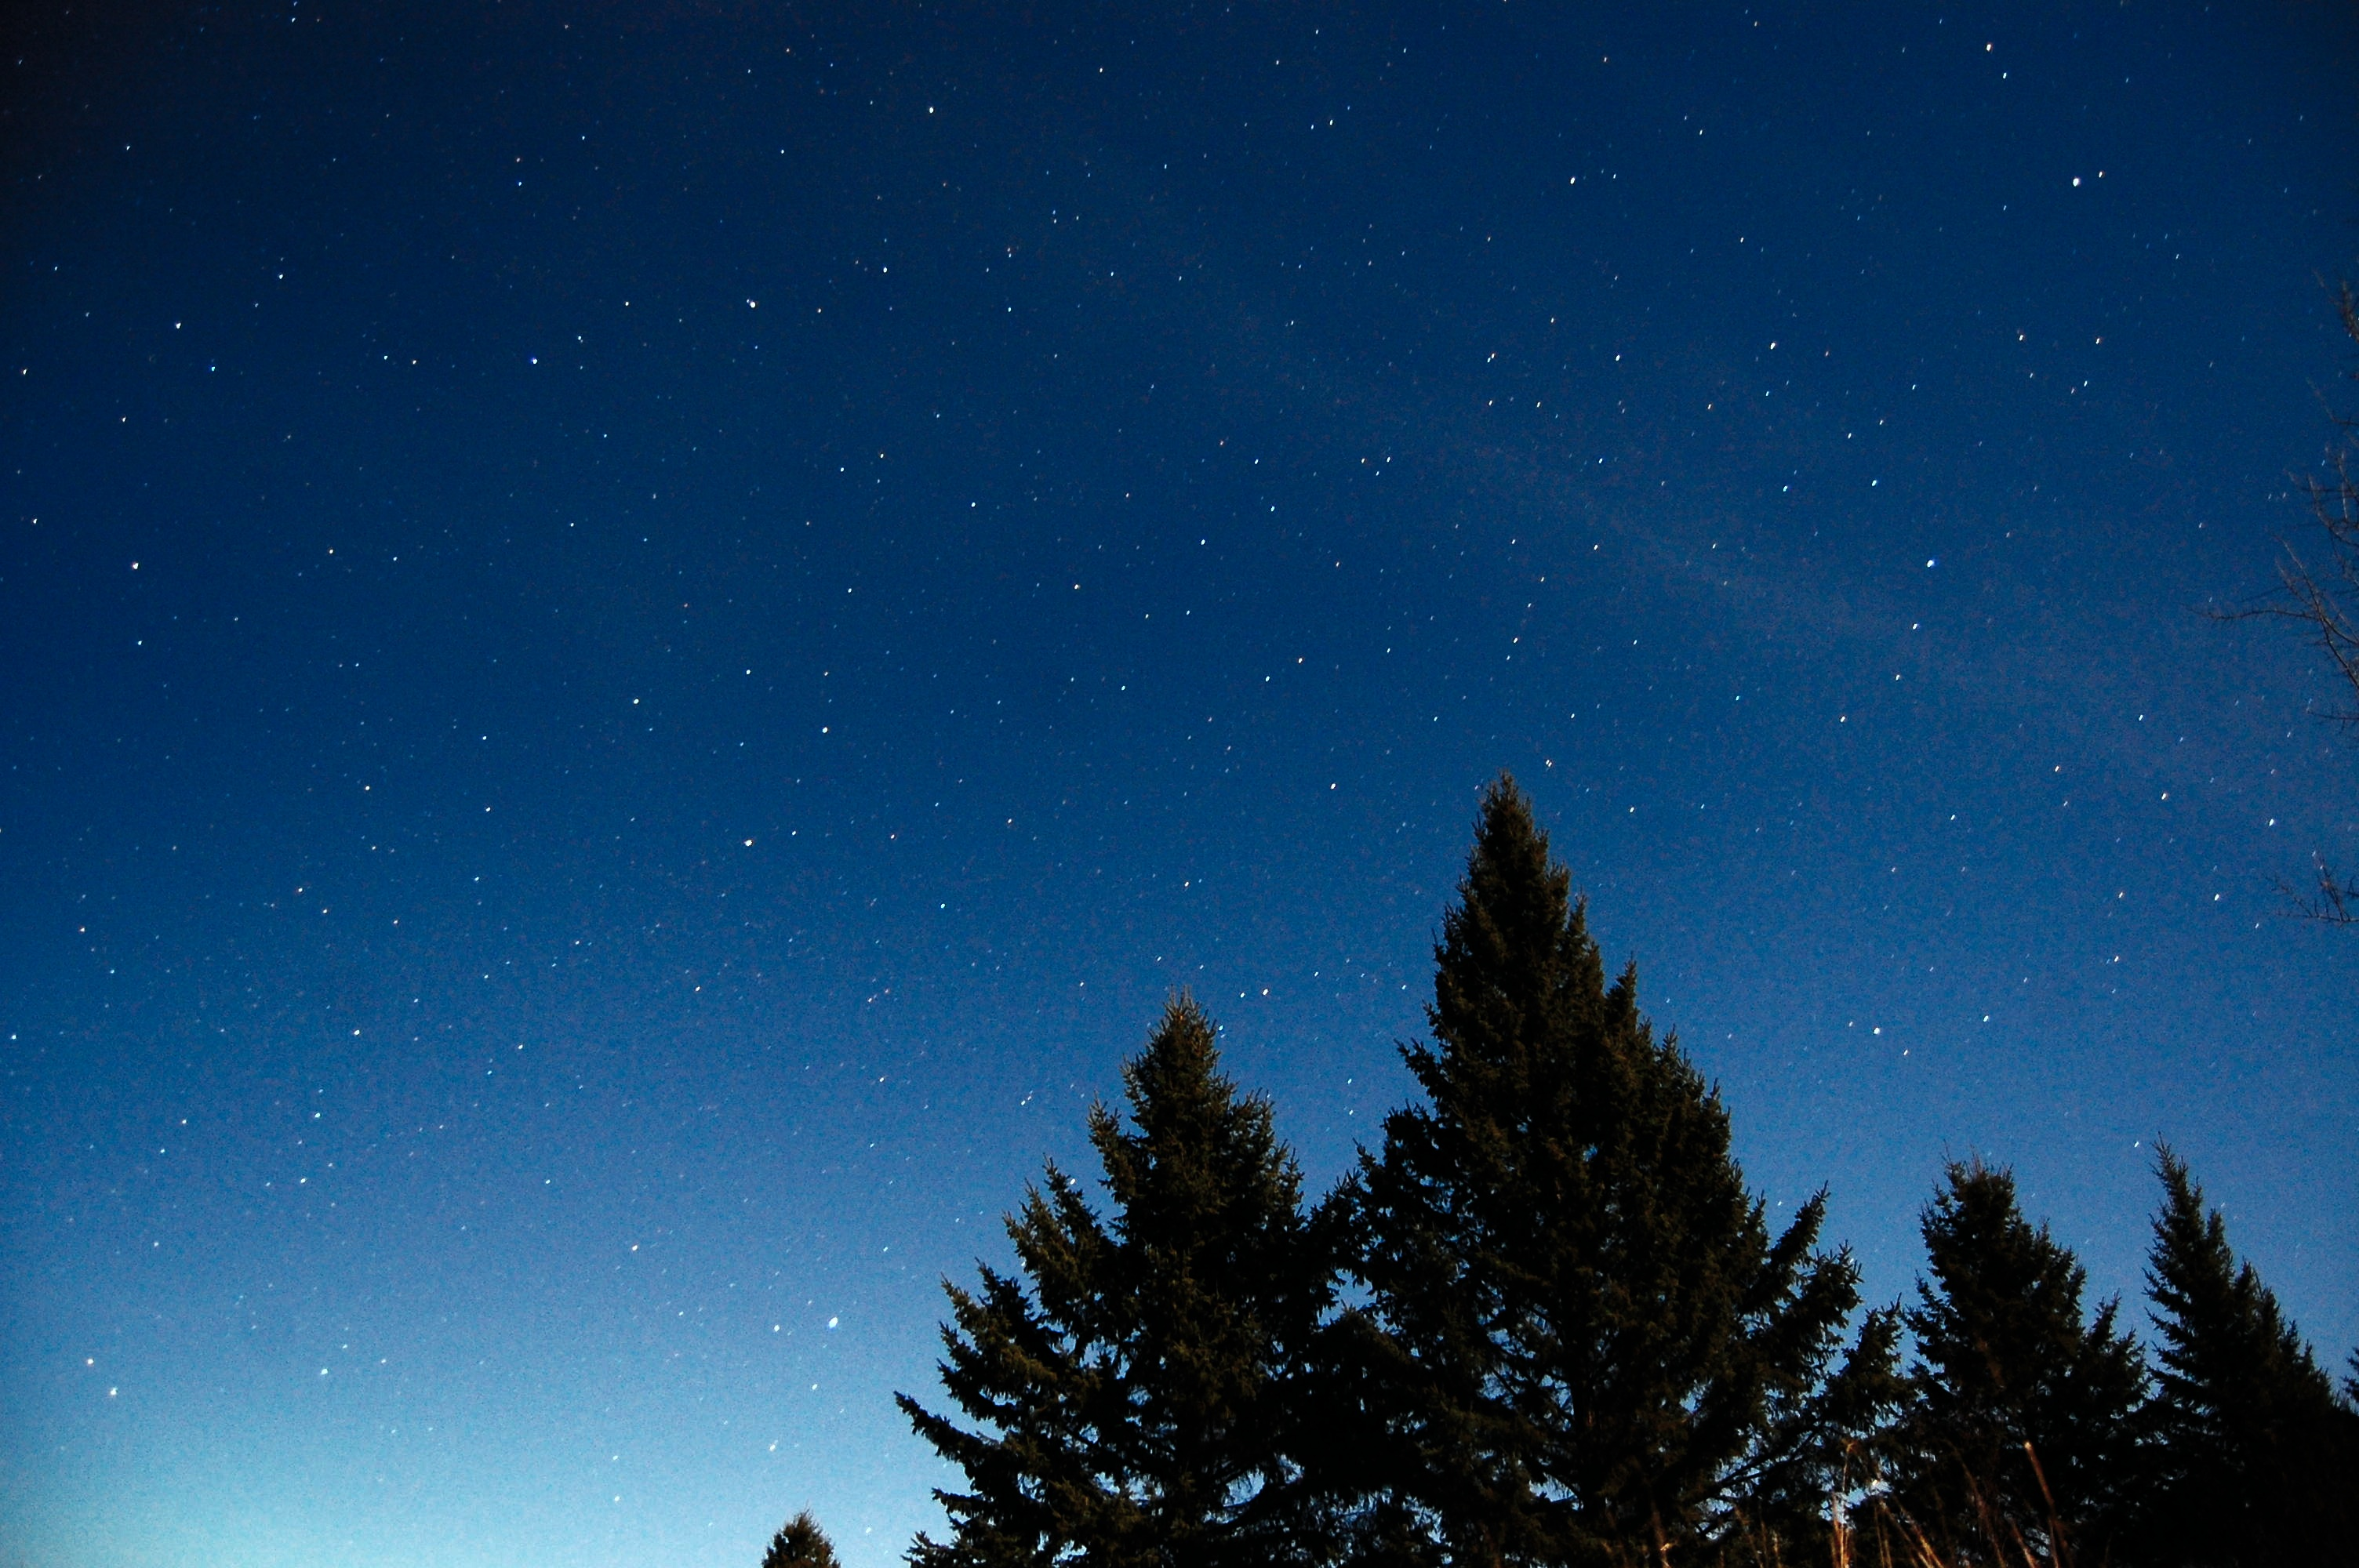 A night time sky with light from a full moon.